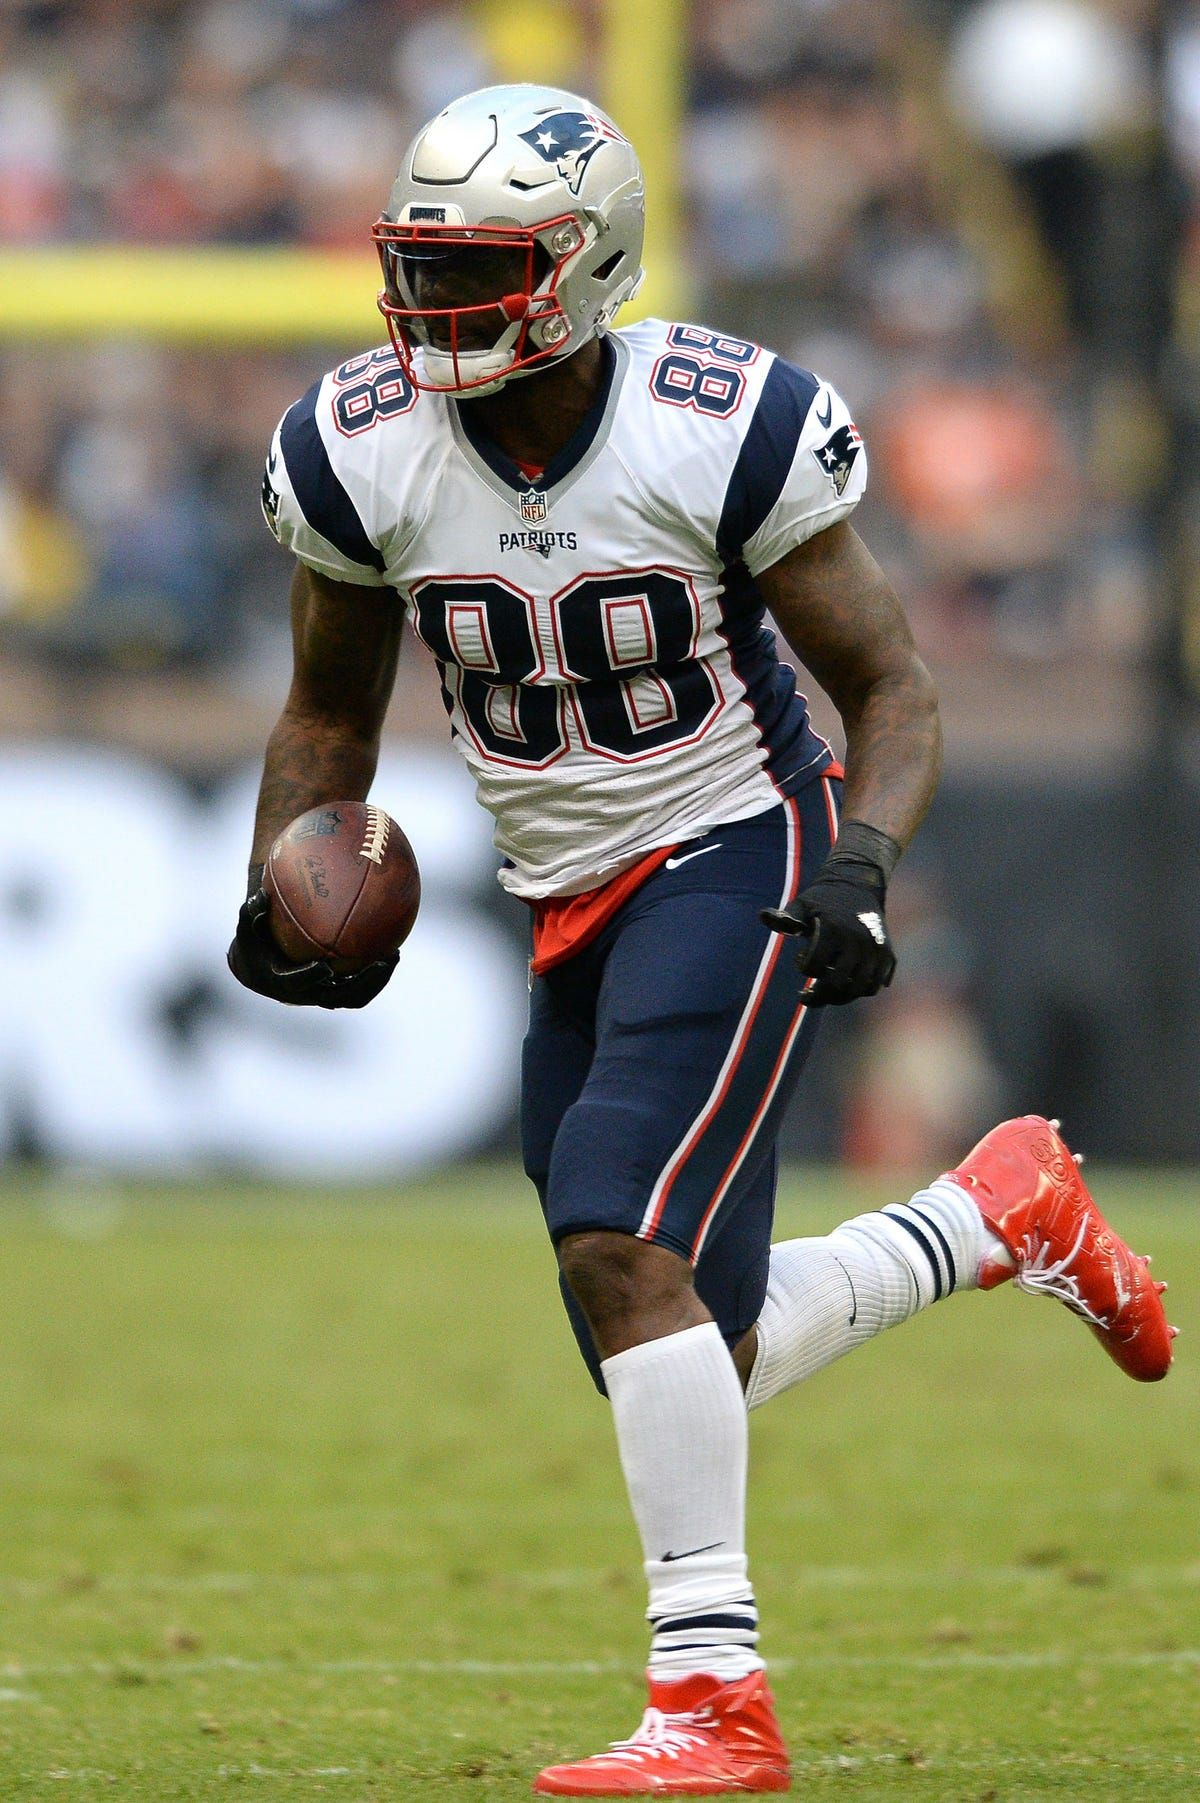 Nfl Protests Martellus Bennett Says White Qb Would Change Is The Perfect High Quality Nfl Superbowl Wallpaper With Hd Res Nfl Nfl Flag Football Corvette Summer